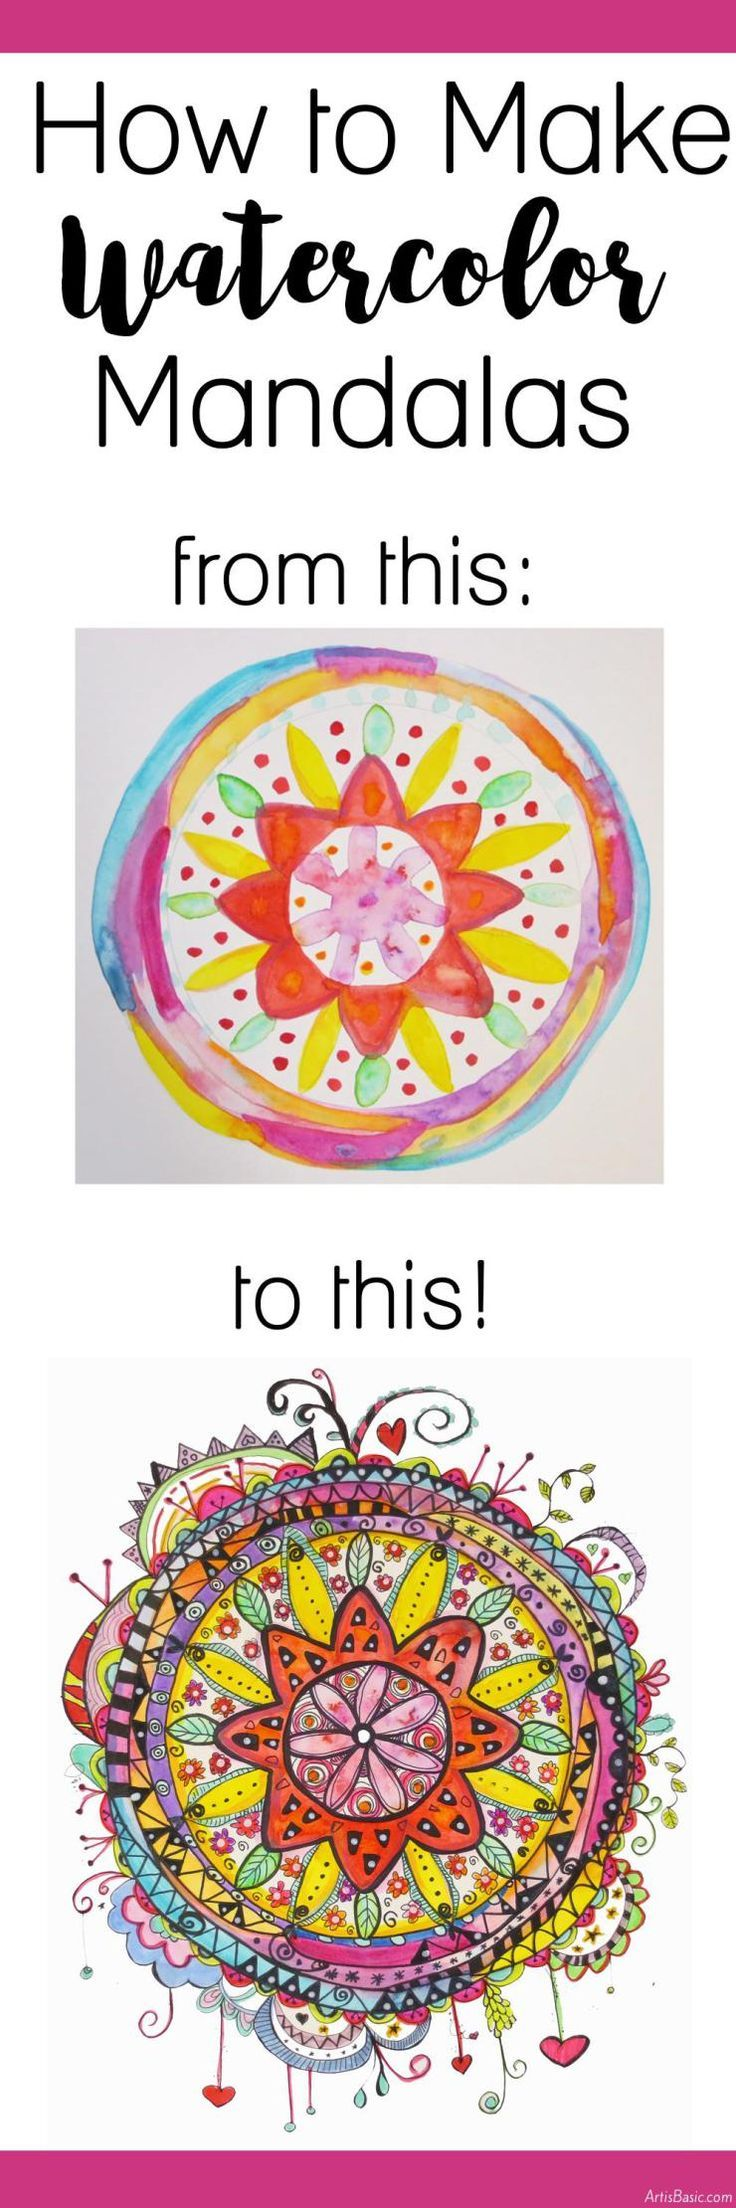 How to Make Watercolor Mandalas